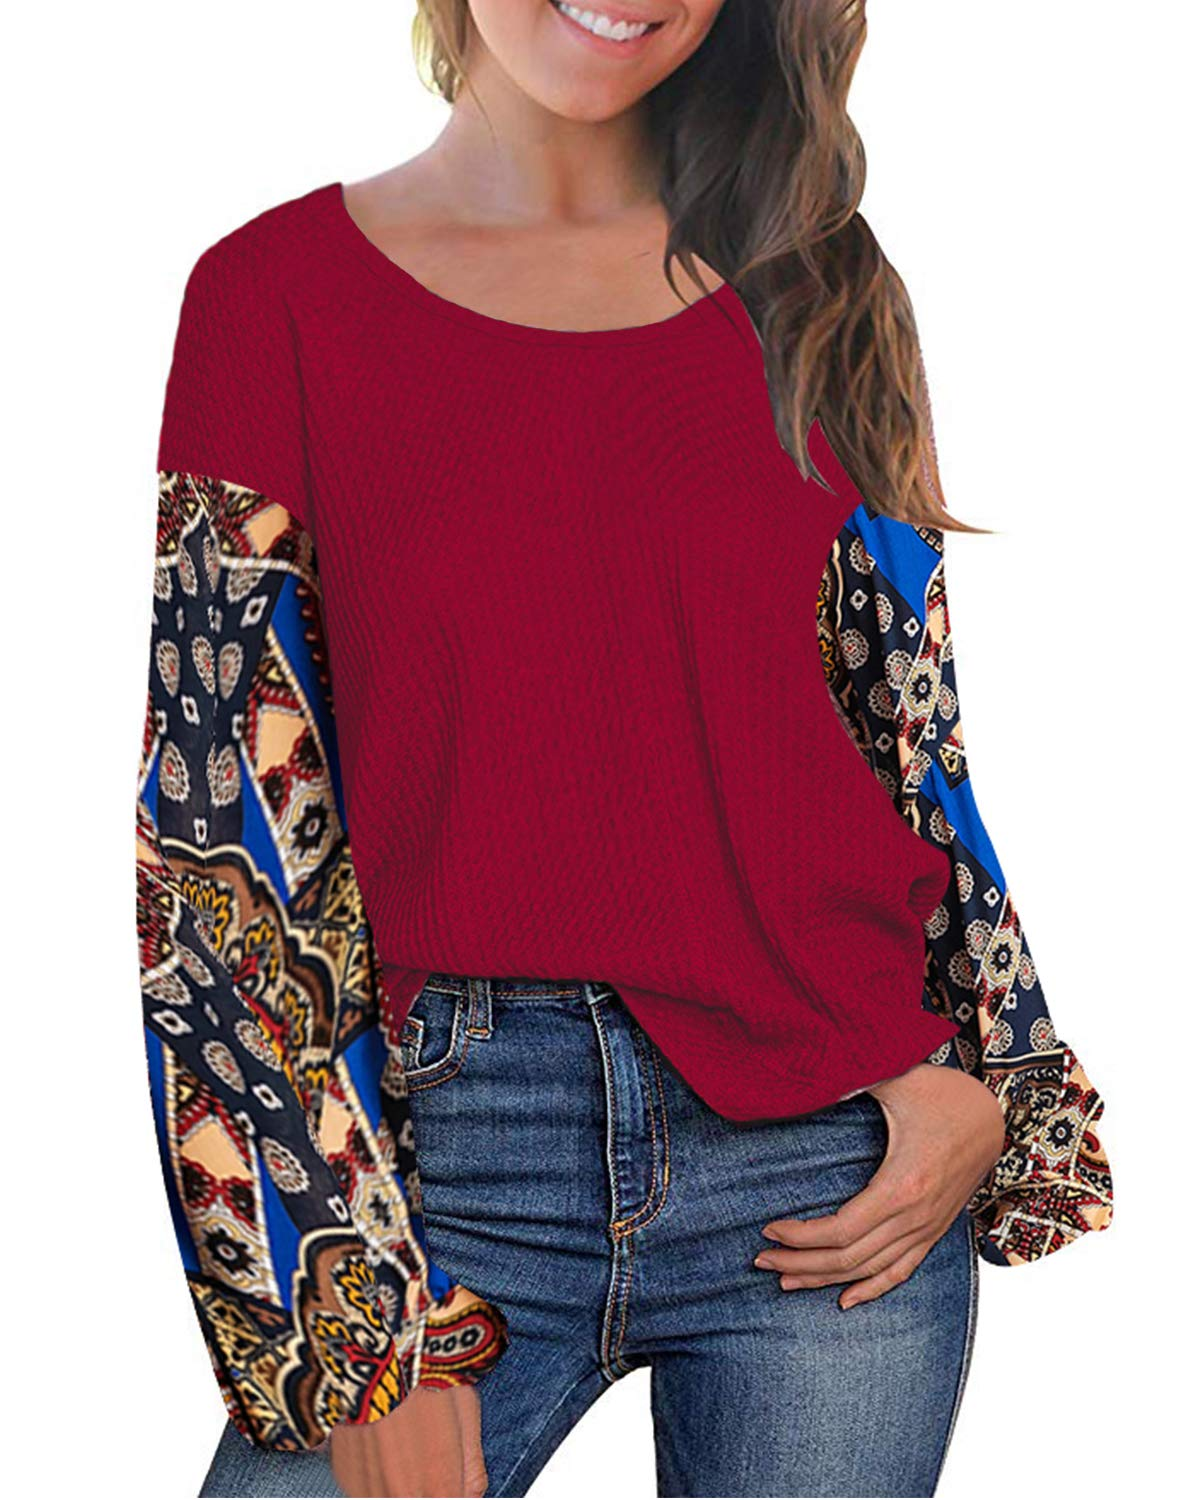 LeMarnia Womens Round Neck Floral Printed Balloon Sleeve Casual Knit Tops Off Shoulder Patchwork Pullover Sweatshirts Wine M